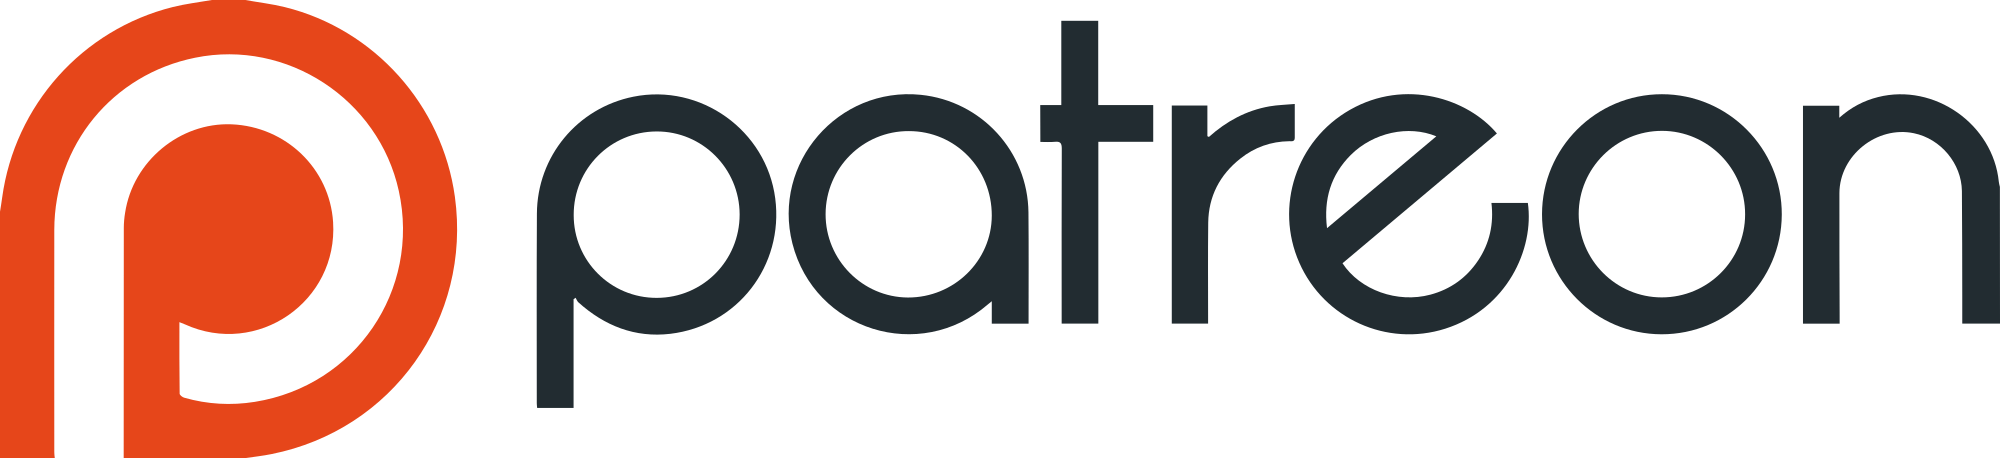 Patreon logo png. File with wordmark svg